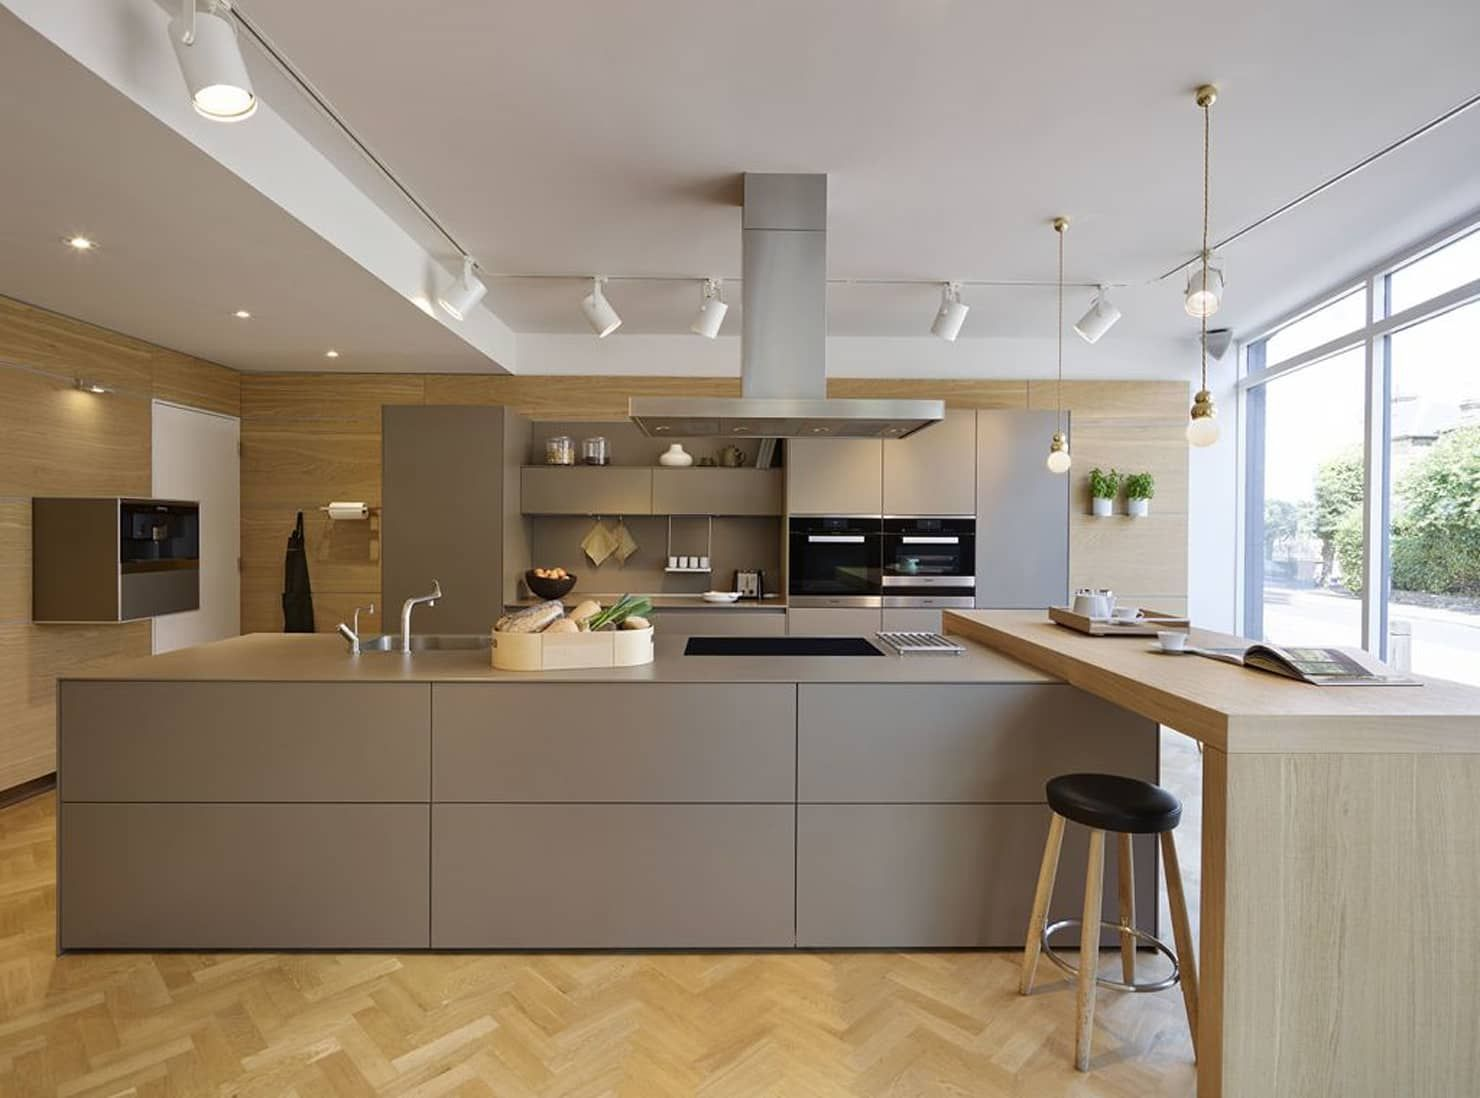 London Showroom Kitchen By Kitchen Architecture Modern Homify Kitchenshowrooms Kitchenmoderndesign Modern Kitchen Design Home Kitchens Kitchen Interior